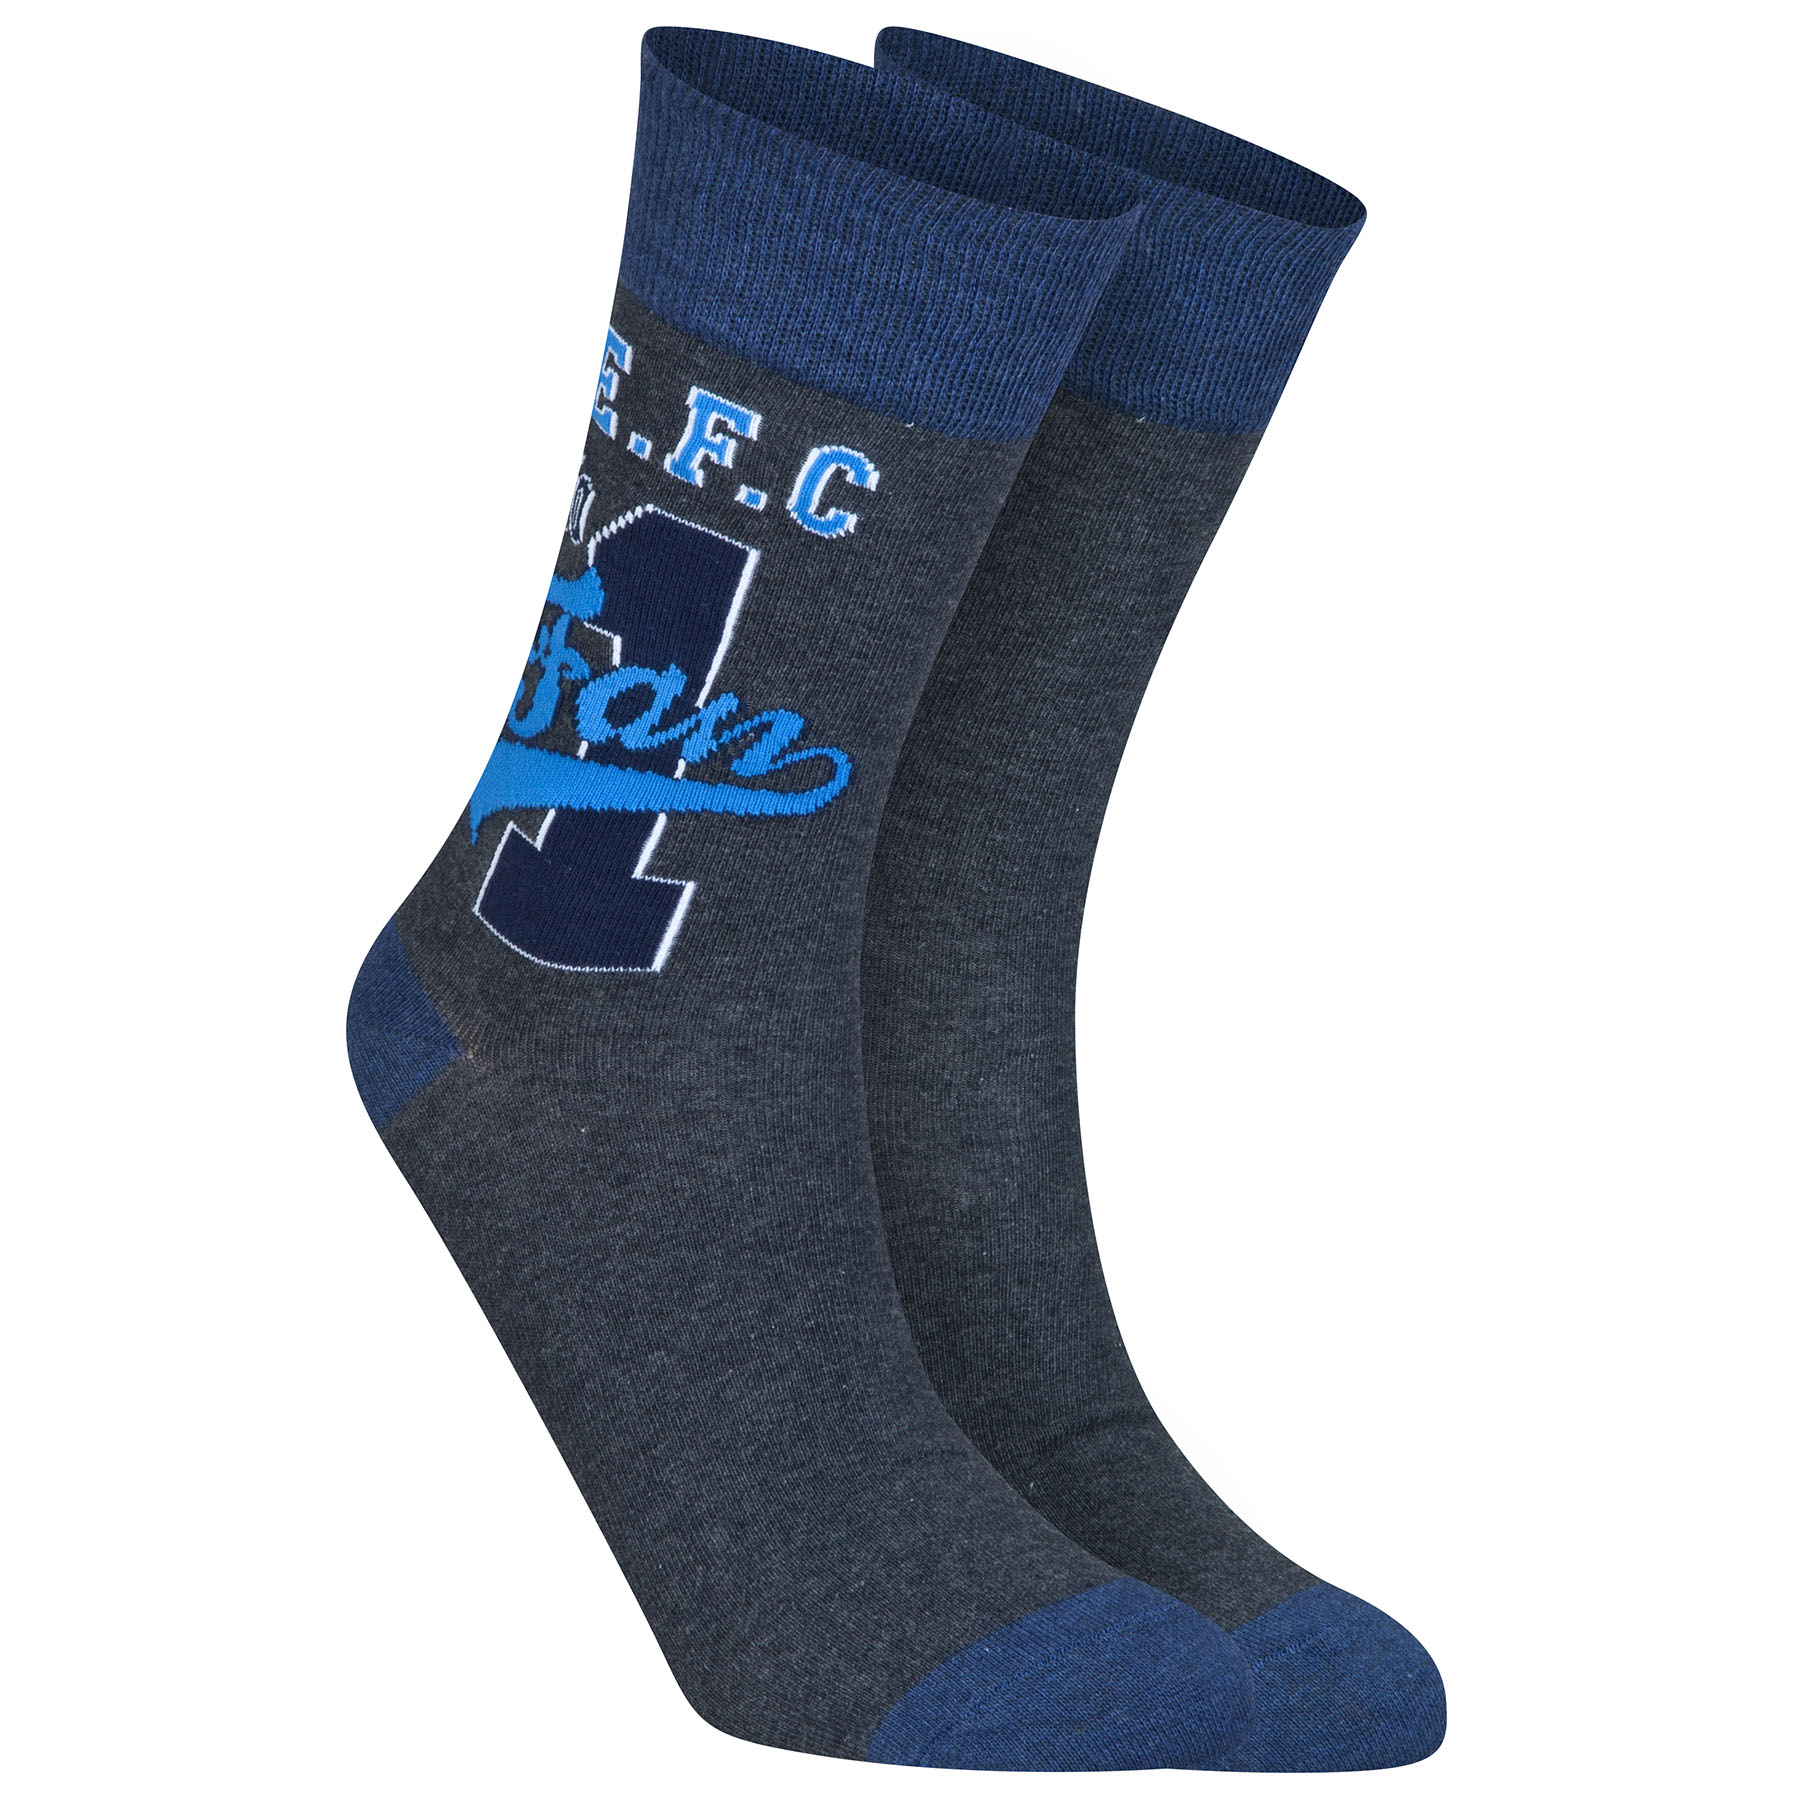 Everton Fan Socks - Charcoal Marl - Mens